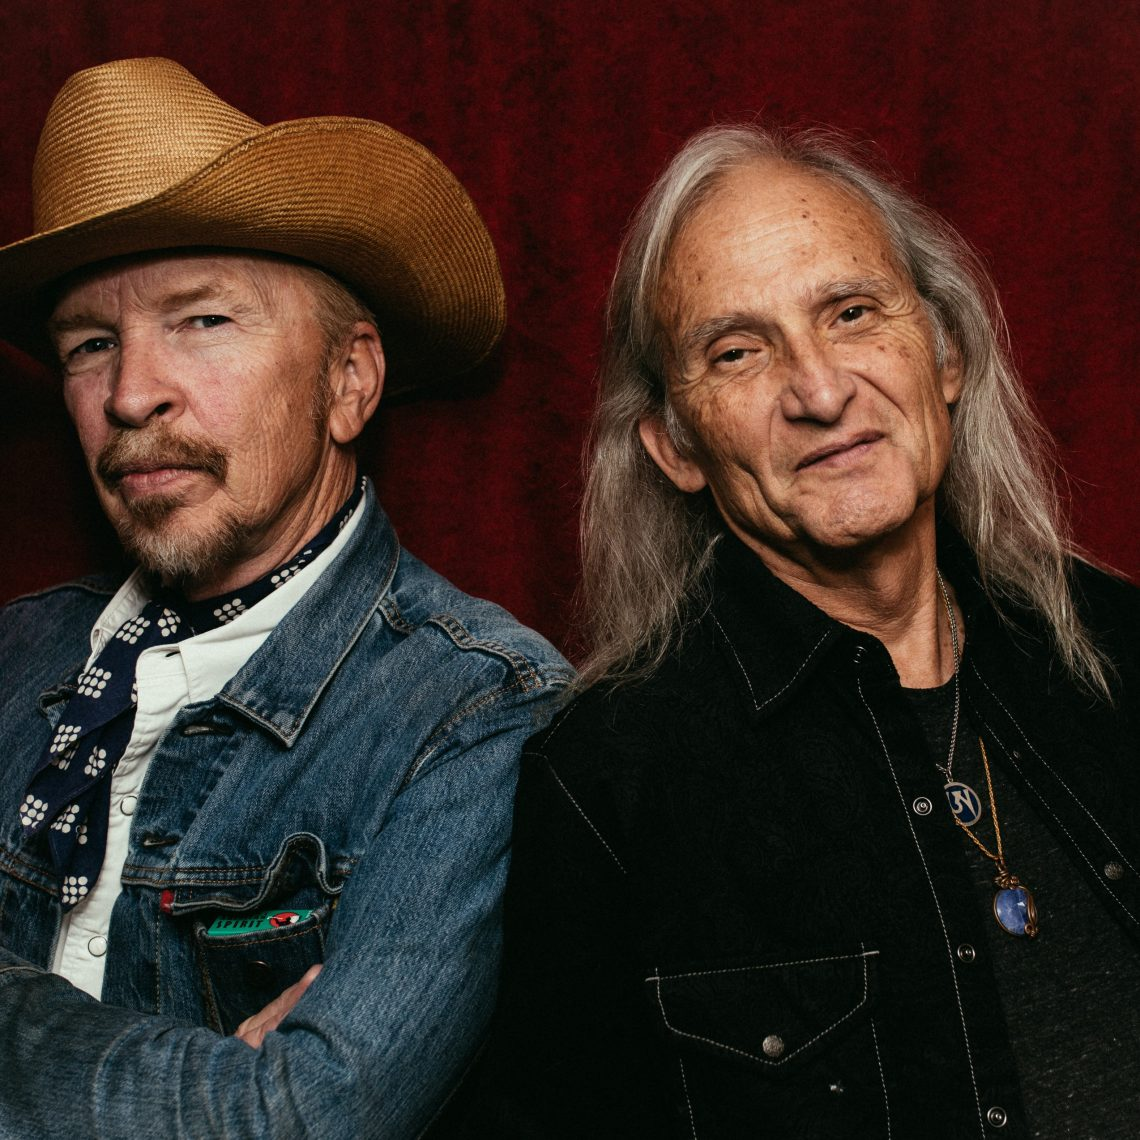 Dave Alvin and Jimmie Dale Gilmore (Photo by Daniel Jackson)